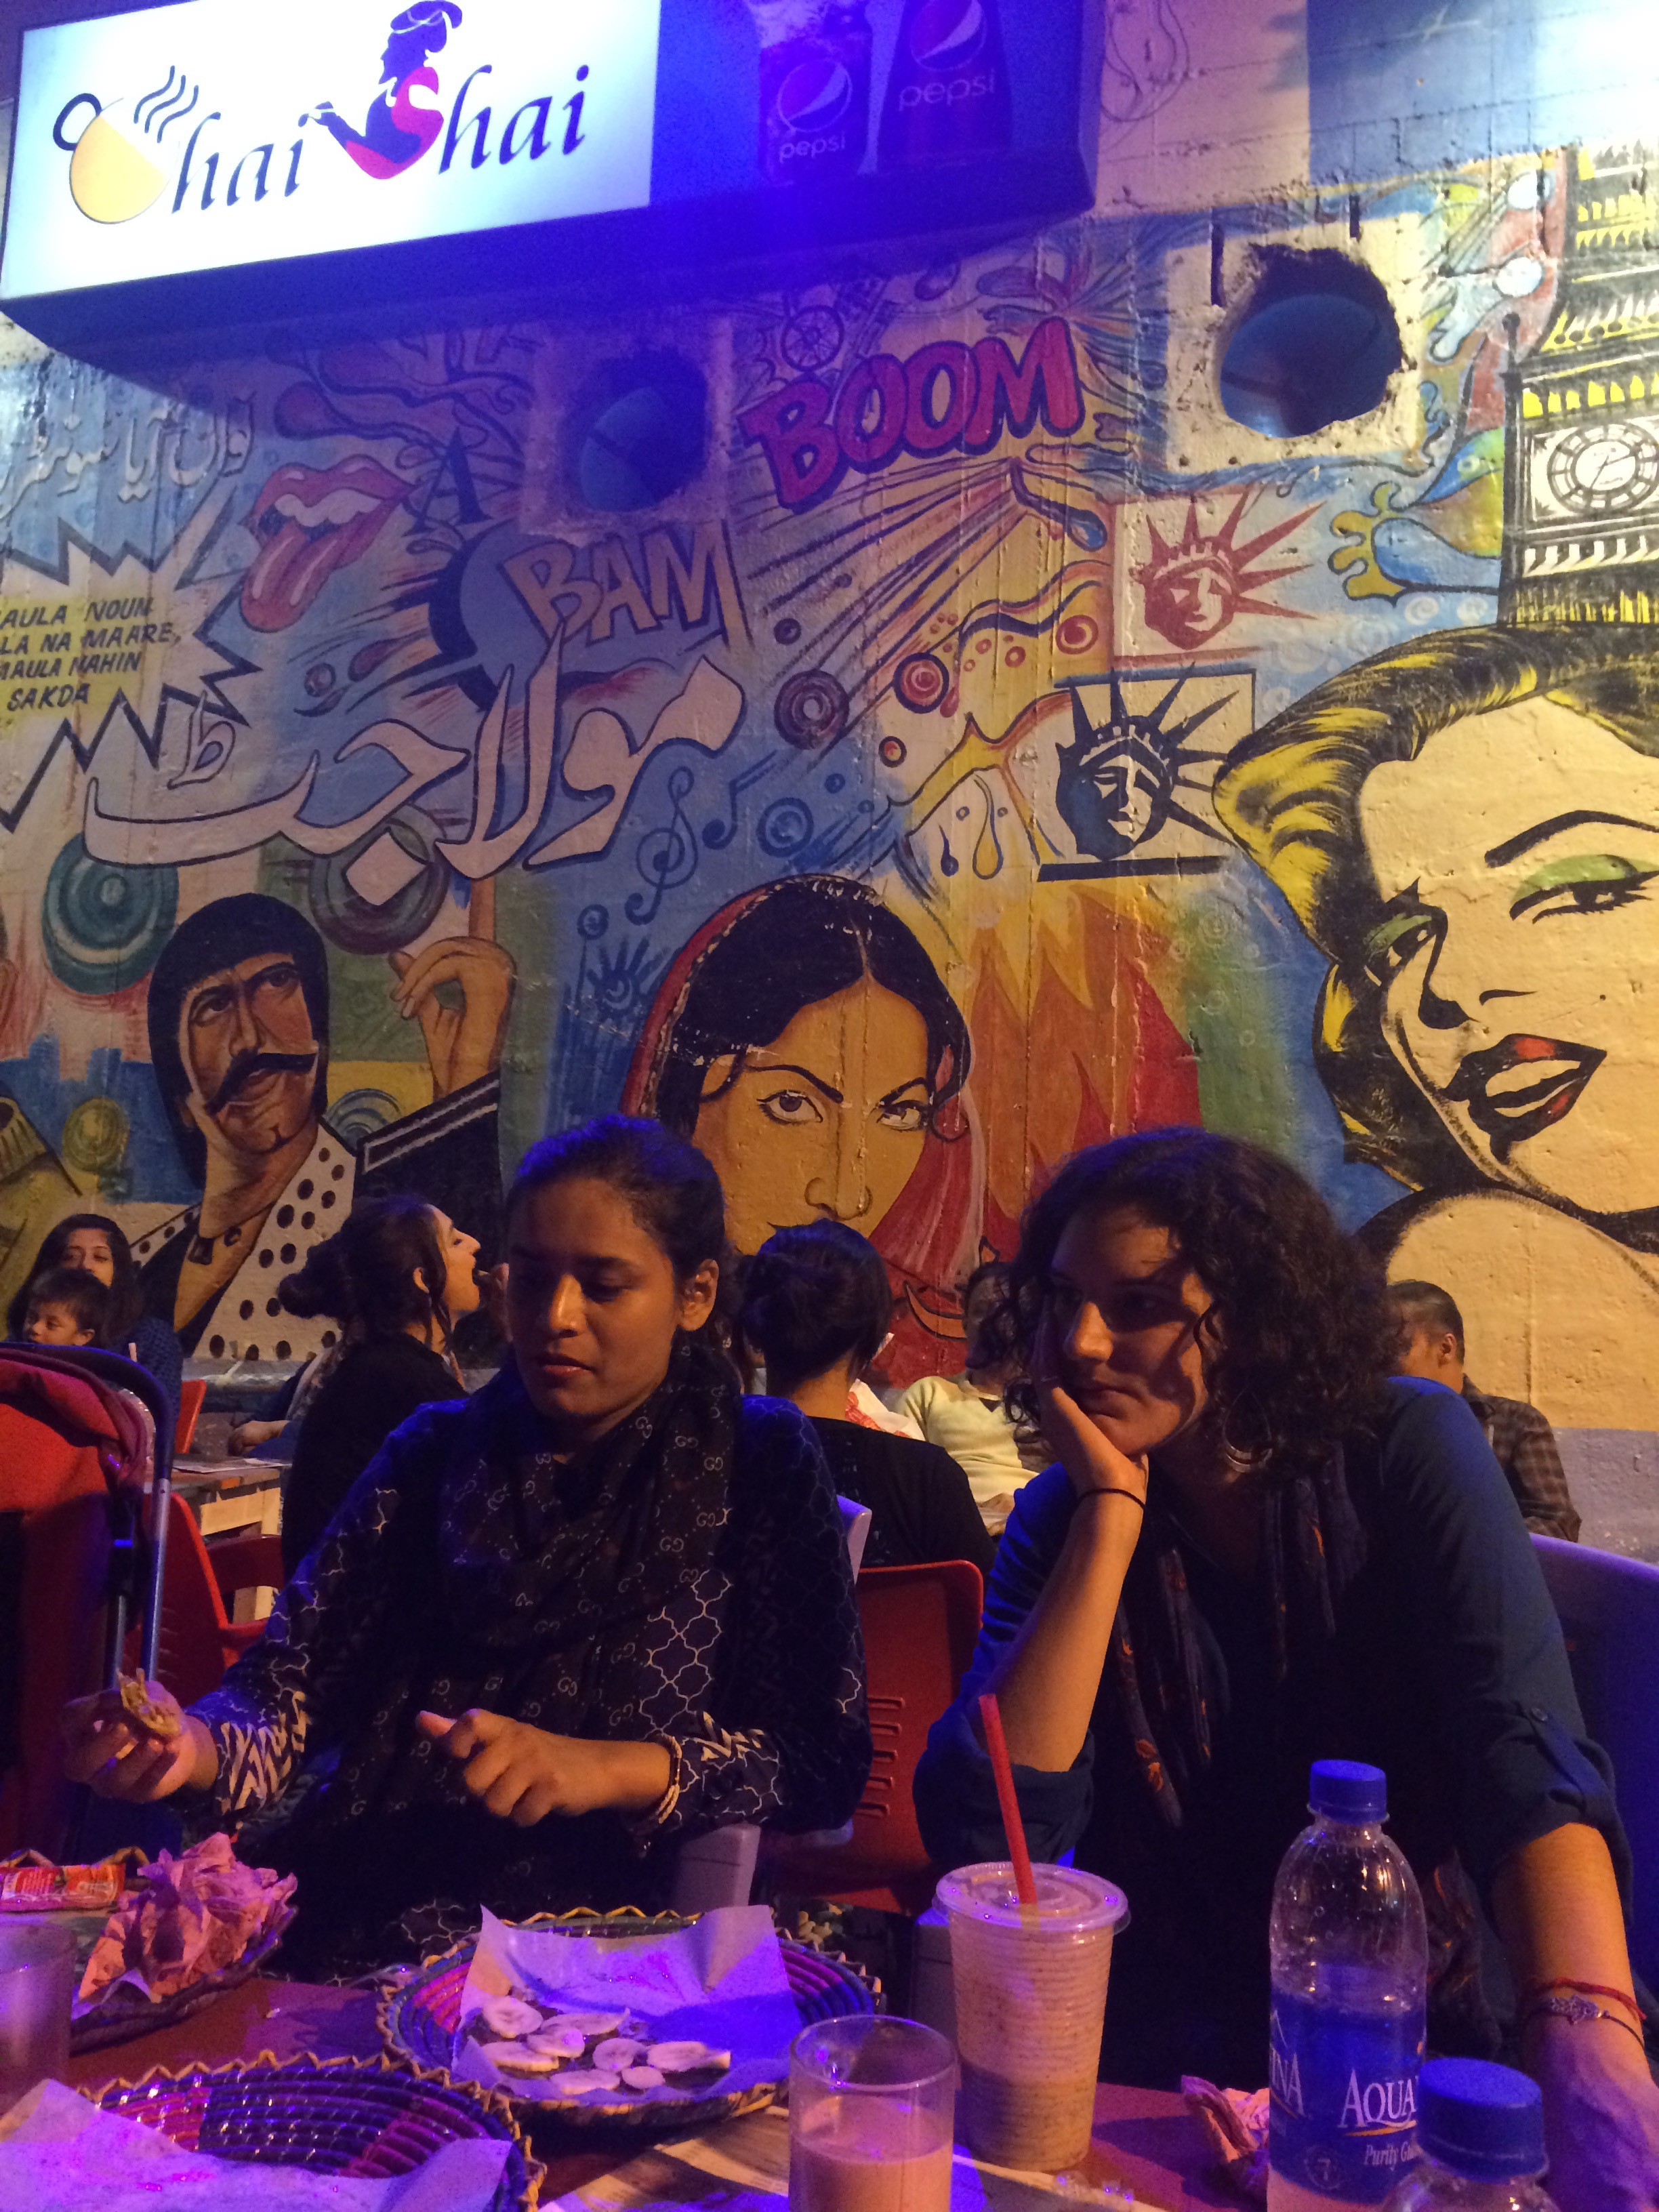 Hanging out at an outdoor cafe called Chai Shai in Karachi